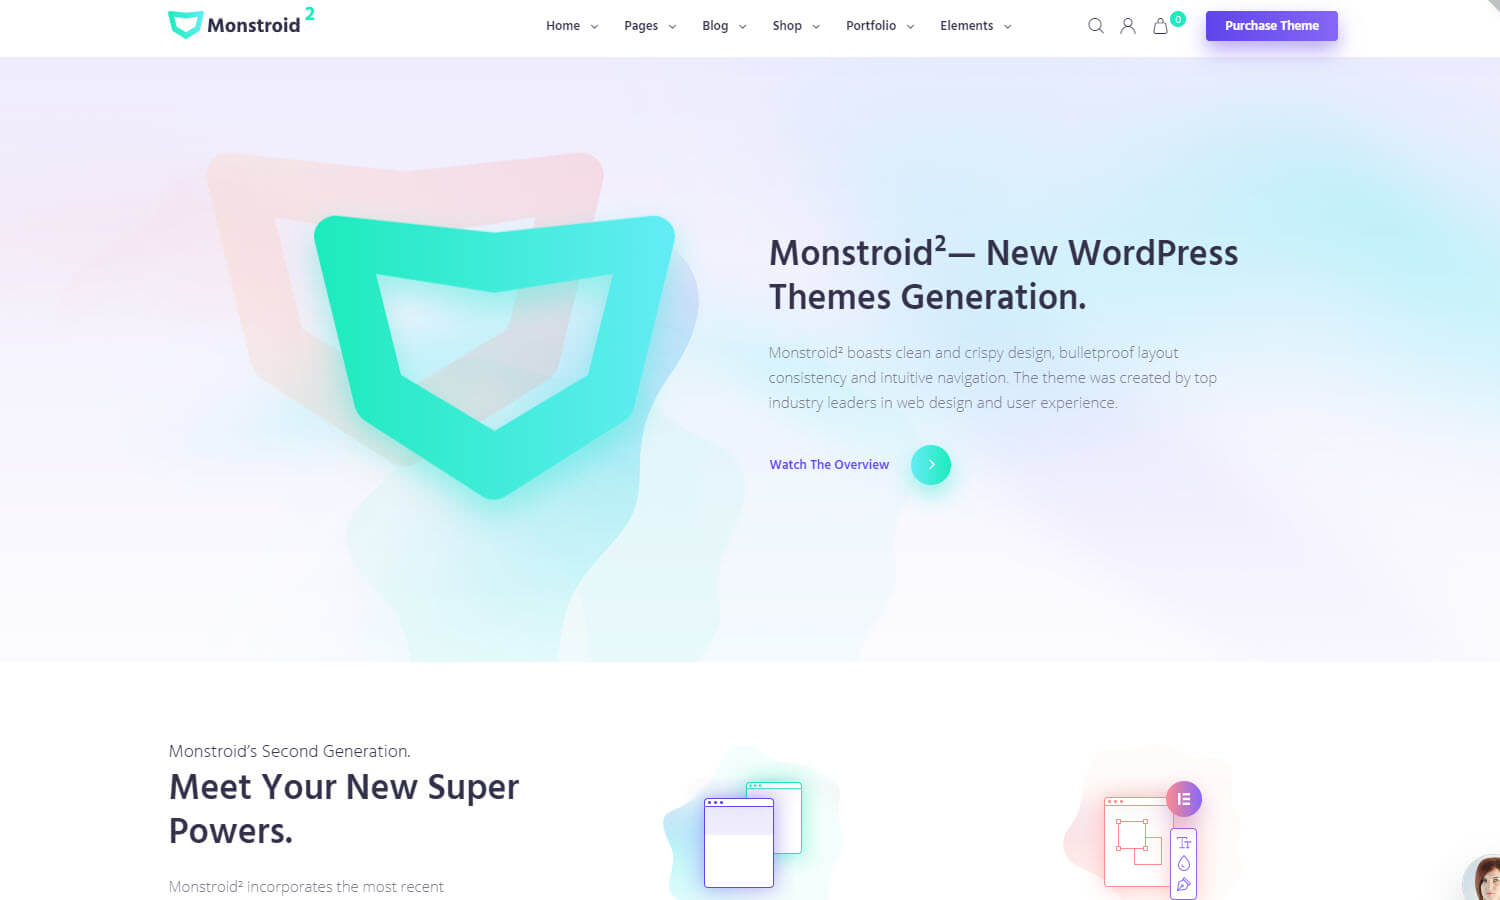 Monstroid 2 screenshot